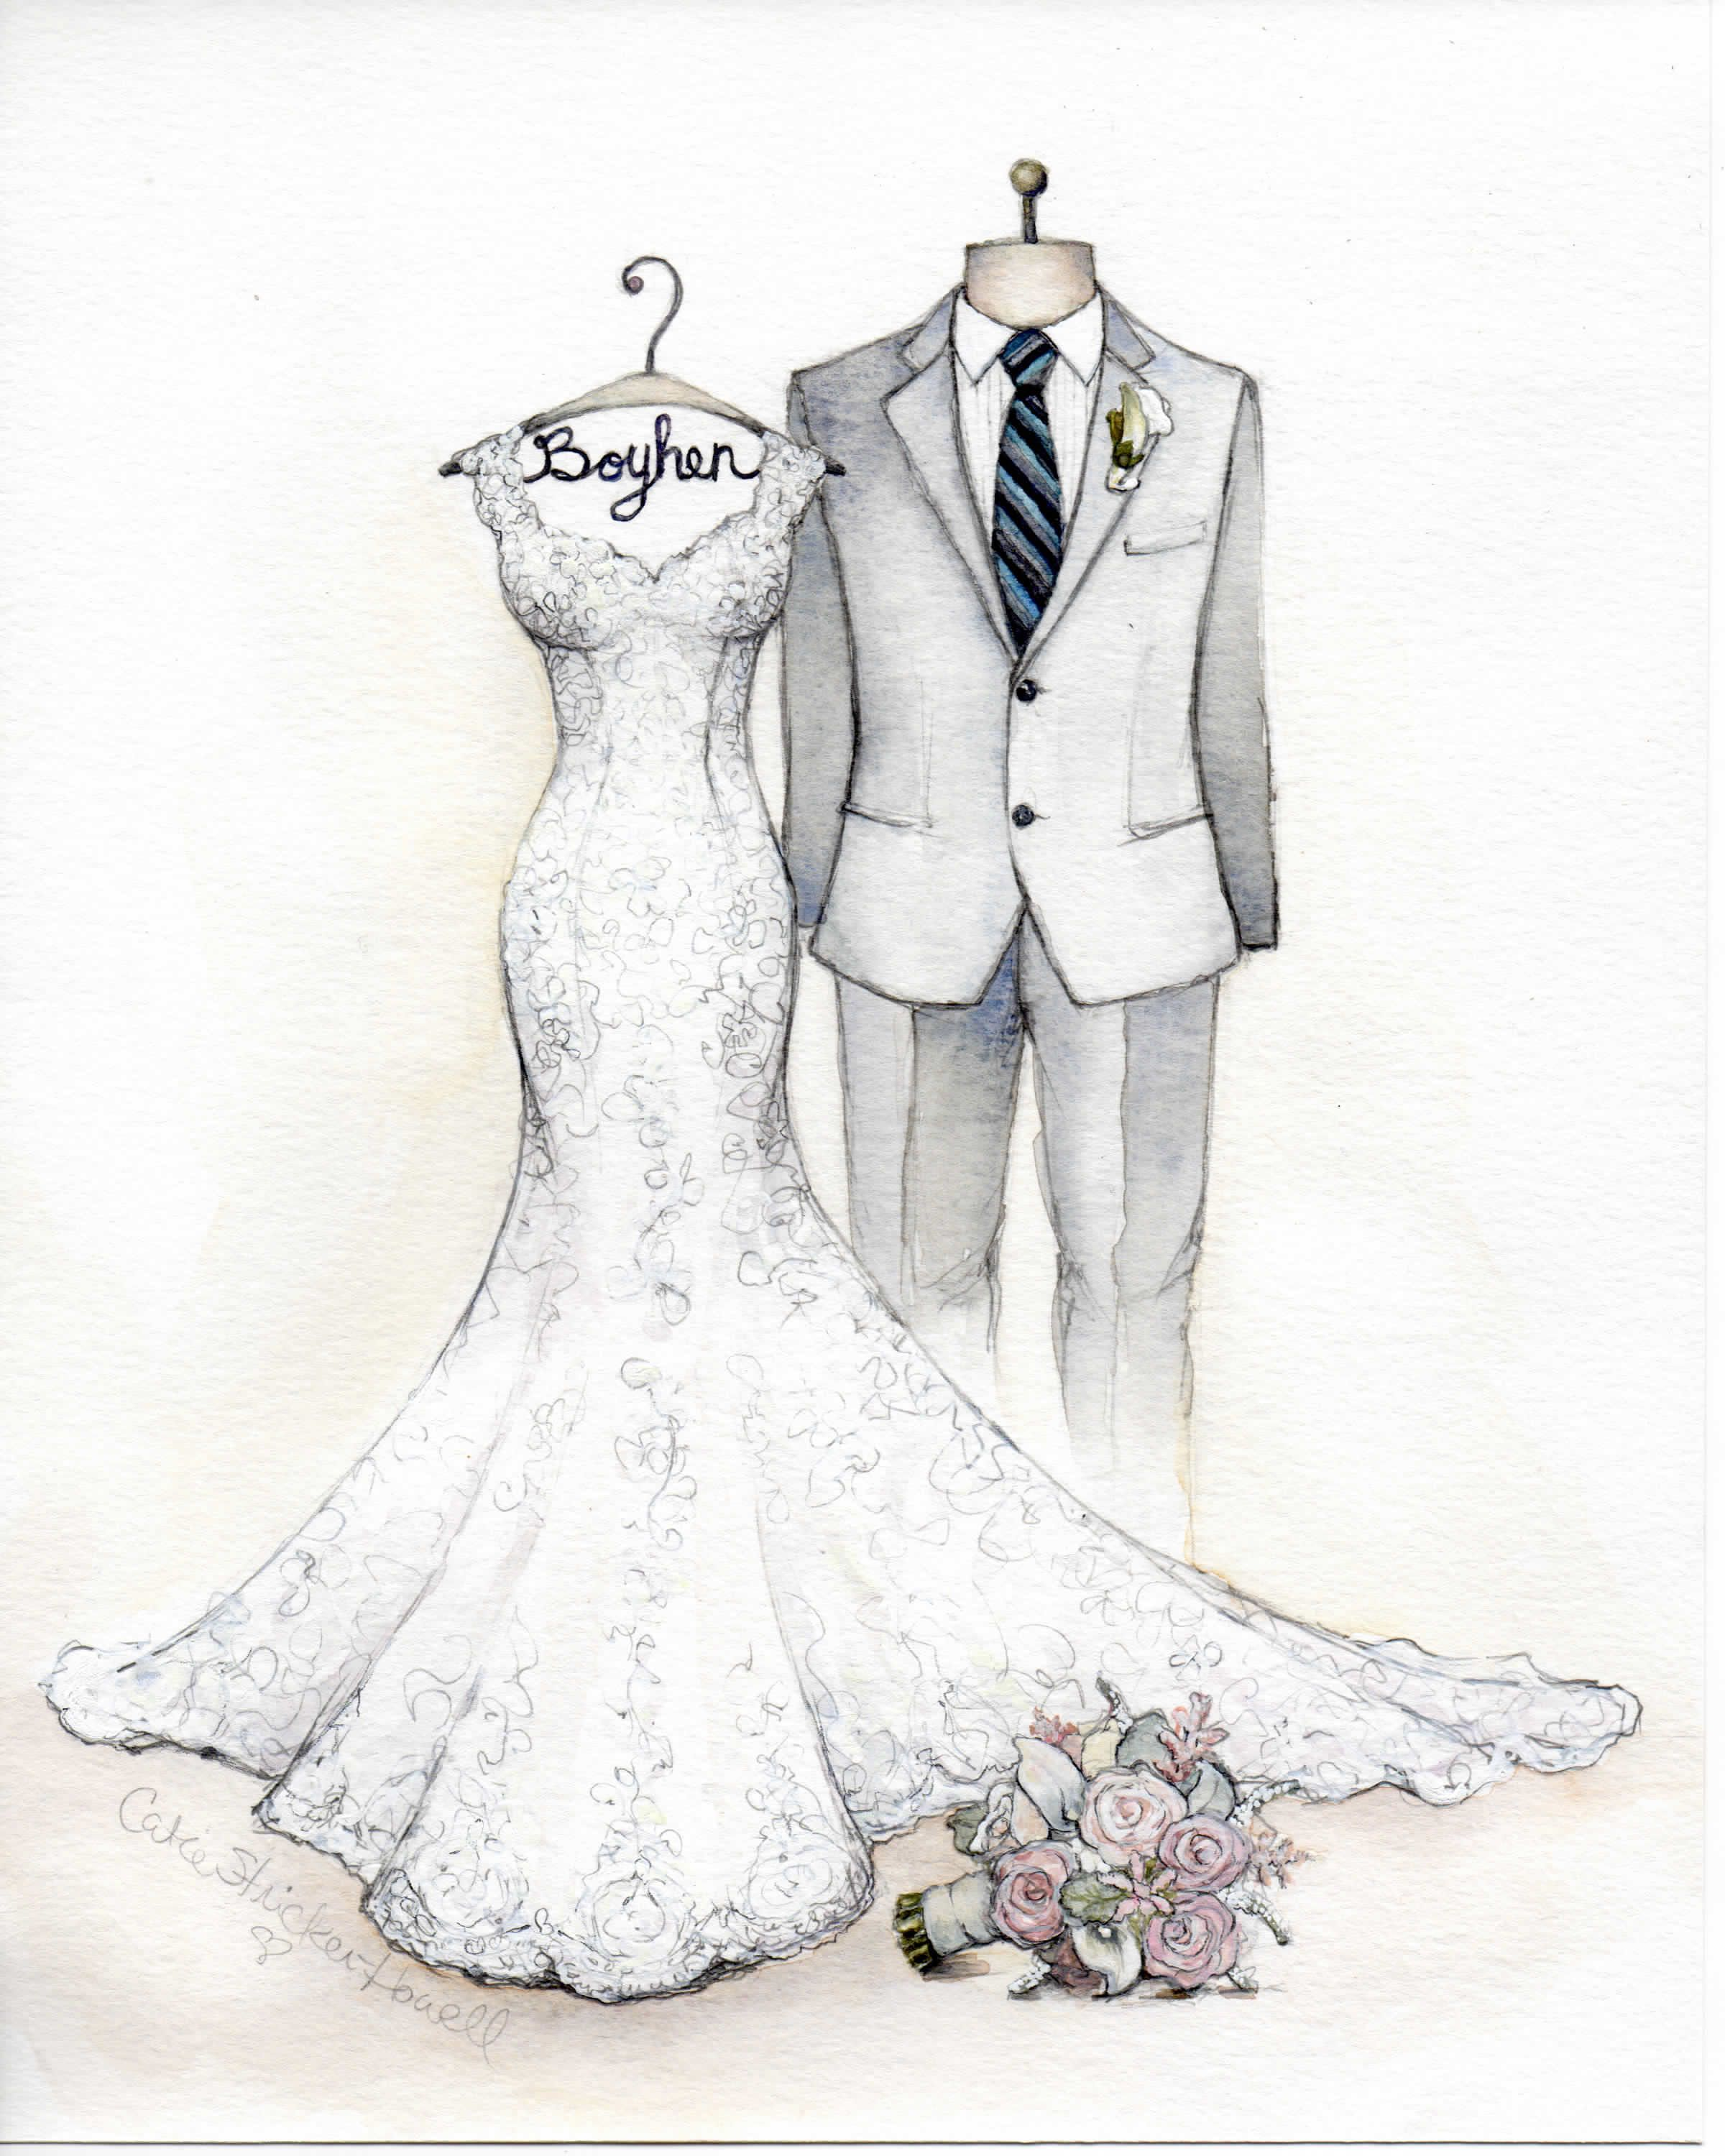 Here S A New One Wedding Dress Sketch Bride Groom With Bouquet Order Your Ow Fashion Drawing Dresses Wedding Dress Illustrations Wedding Dress Drawings